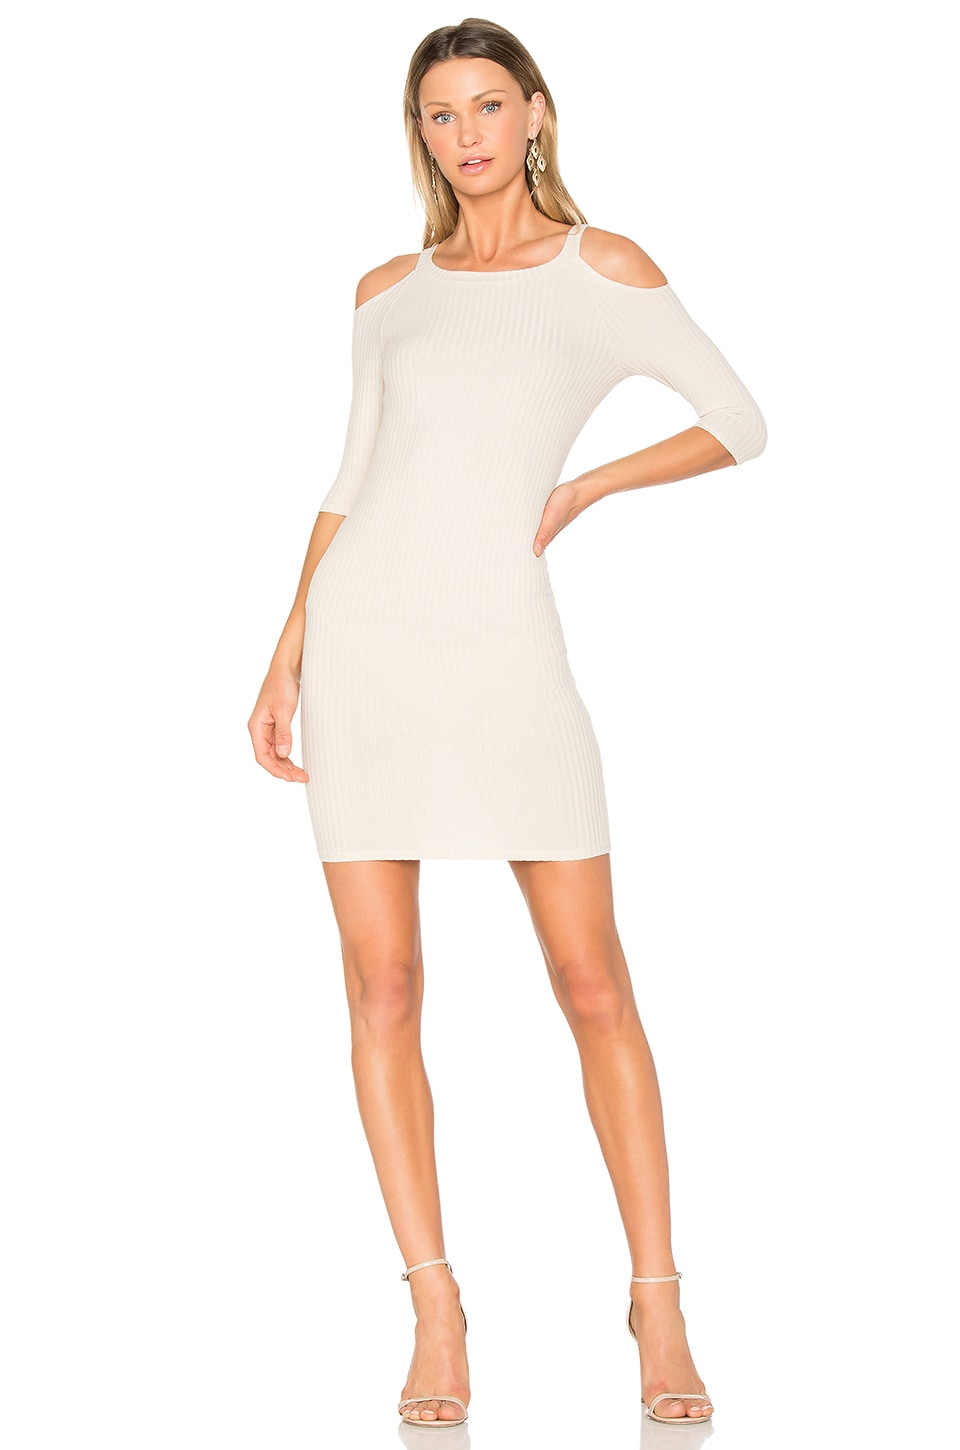 NYTT Cold Shoulder Dress in Sand